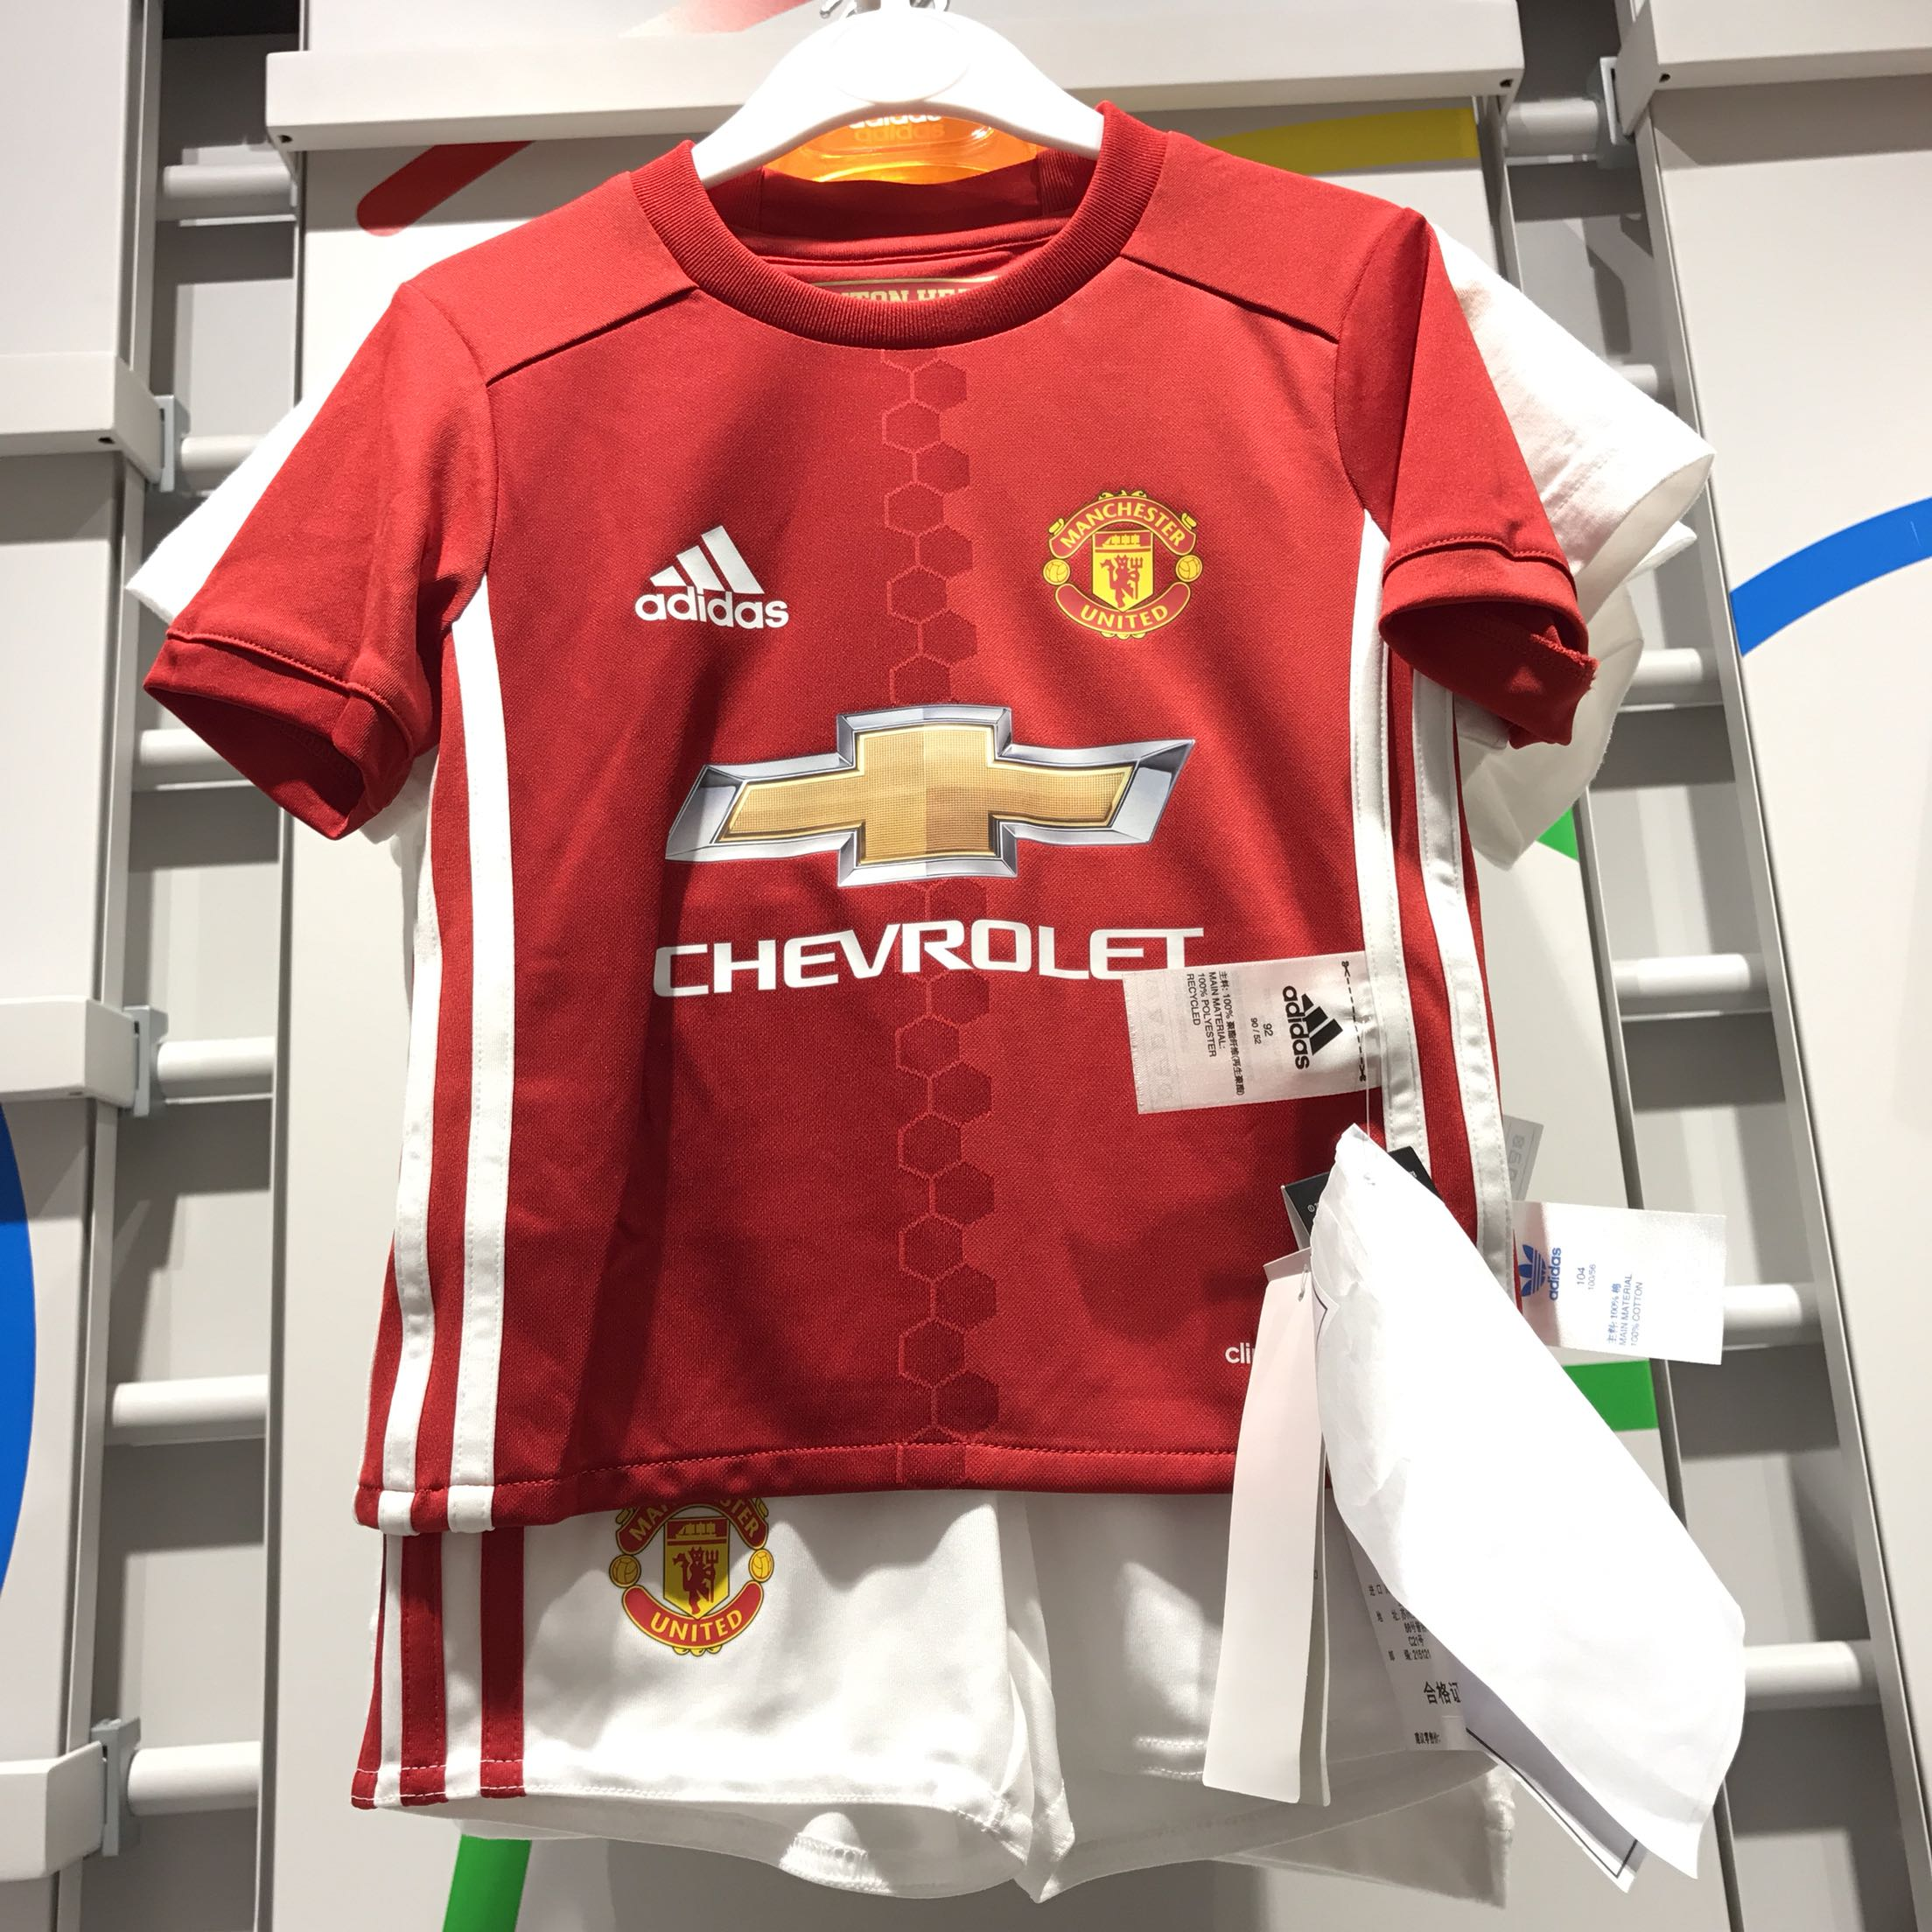 Adidas Adidas children's wear, 2017 new Manchester United home jerseys, mini suits, AI6711